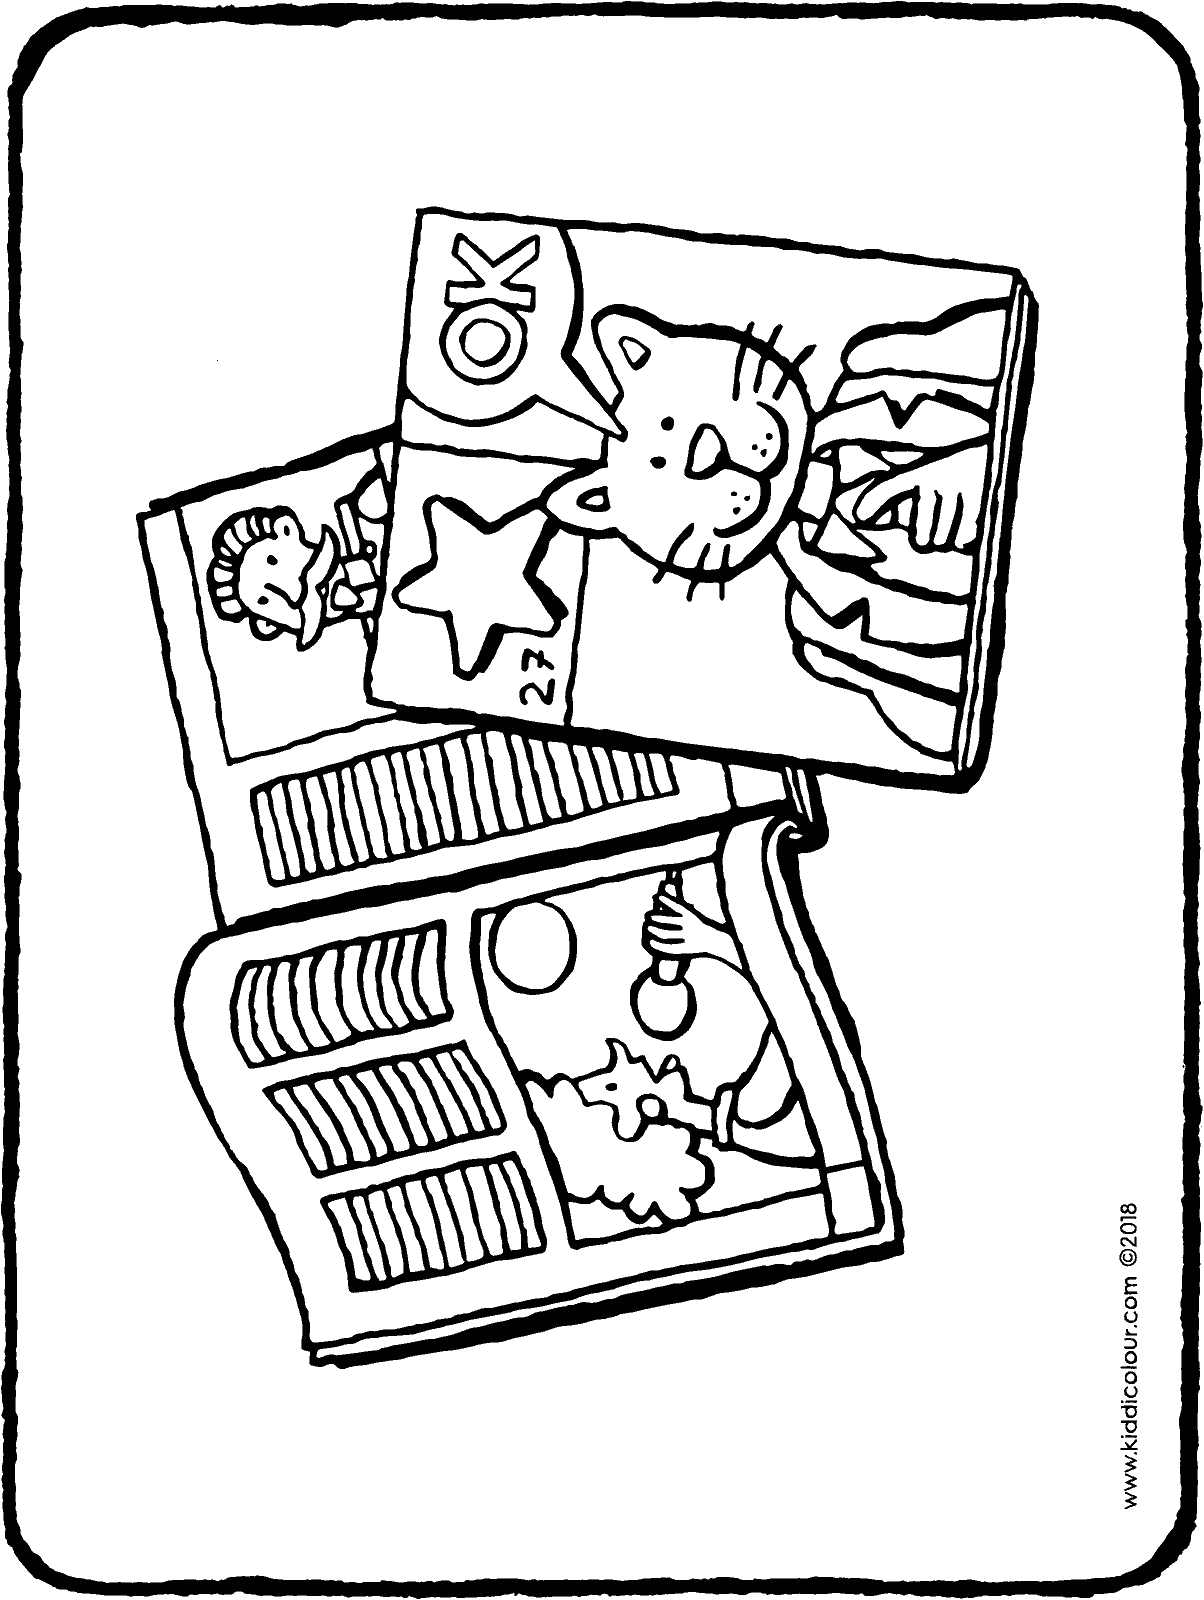 magazine colouring page drawing picture 01H